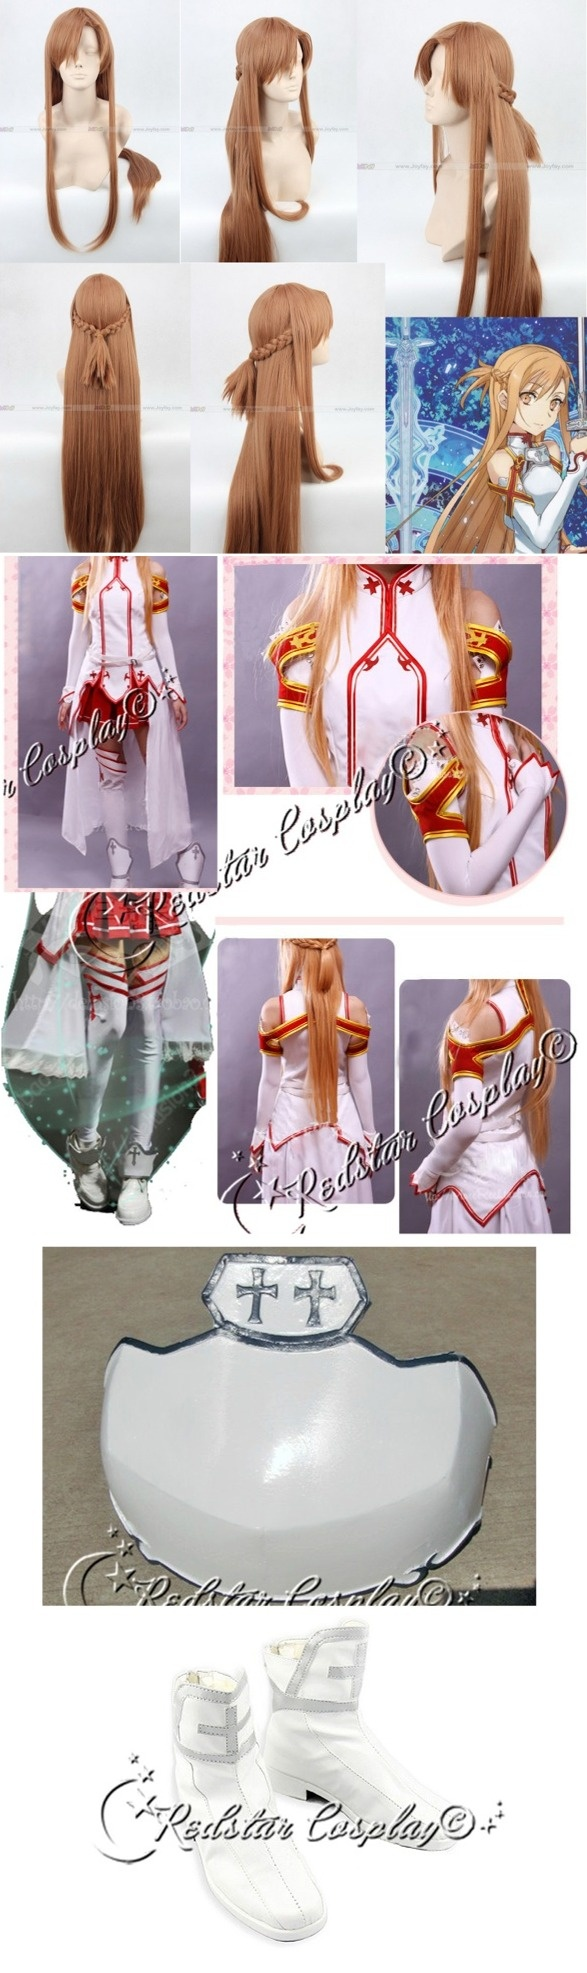 My Asuna from Sword Art Online cosplay costume for 2013!